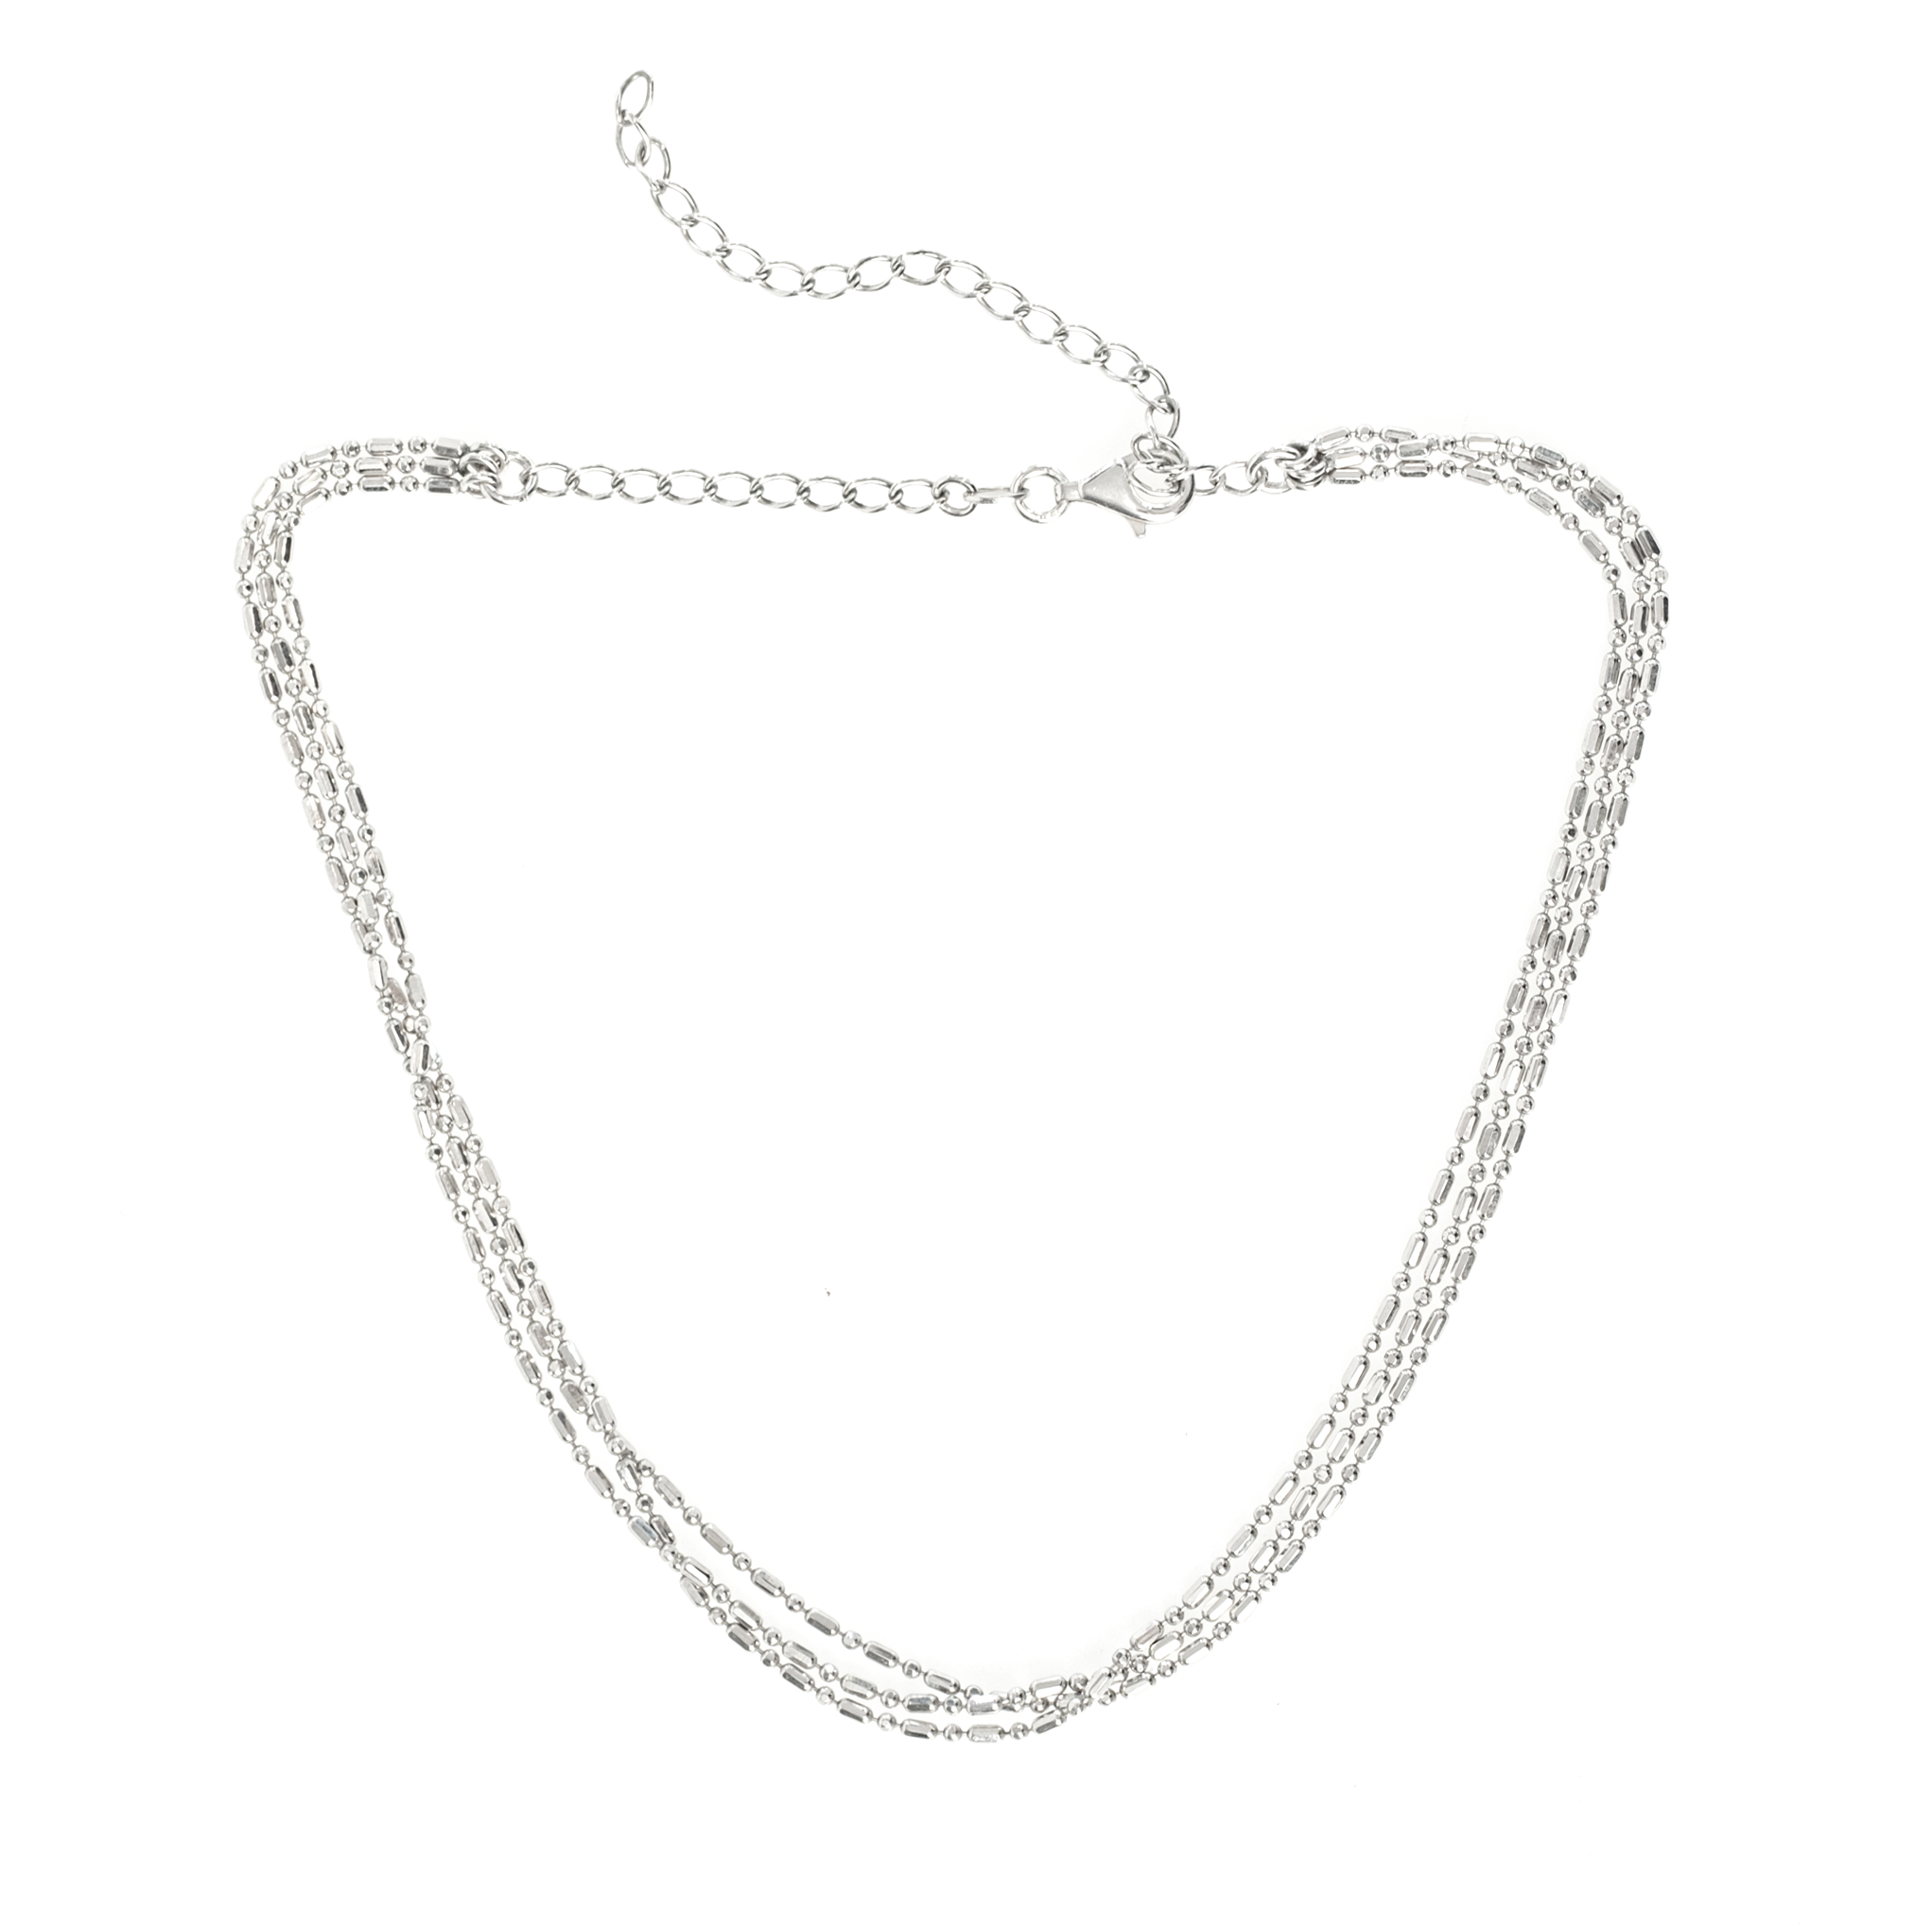 TRIPLE BEADED CHAIN CHOKER